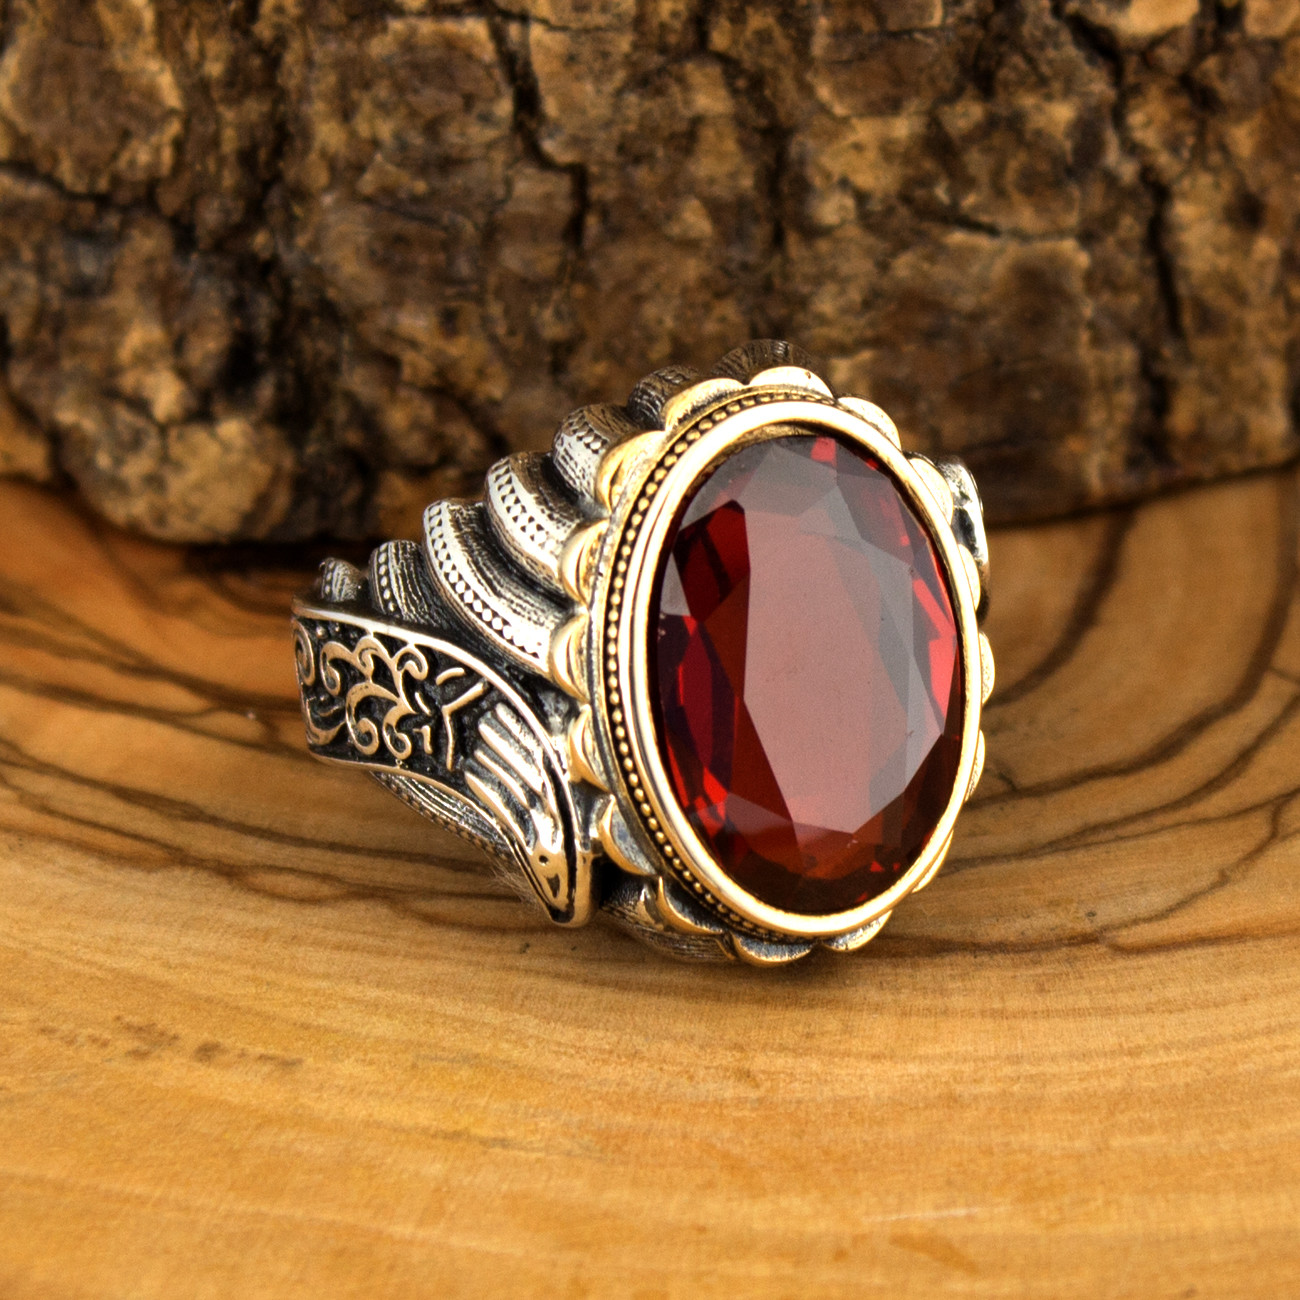 925 Sterling Silver Ring For Men With Red Zircon Stone Jewelry Fashion Vintage Gift Onyx Aqeq Rings All Size Made In Turkey